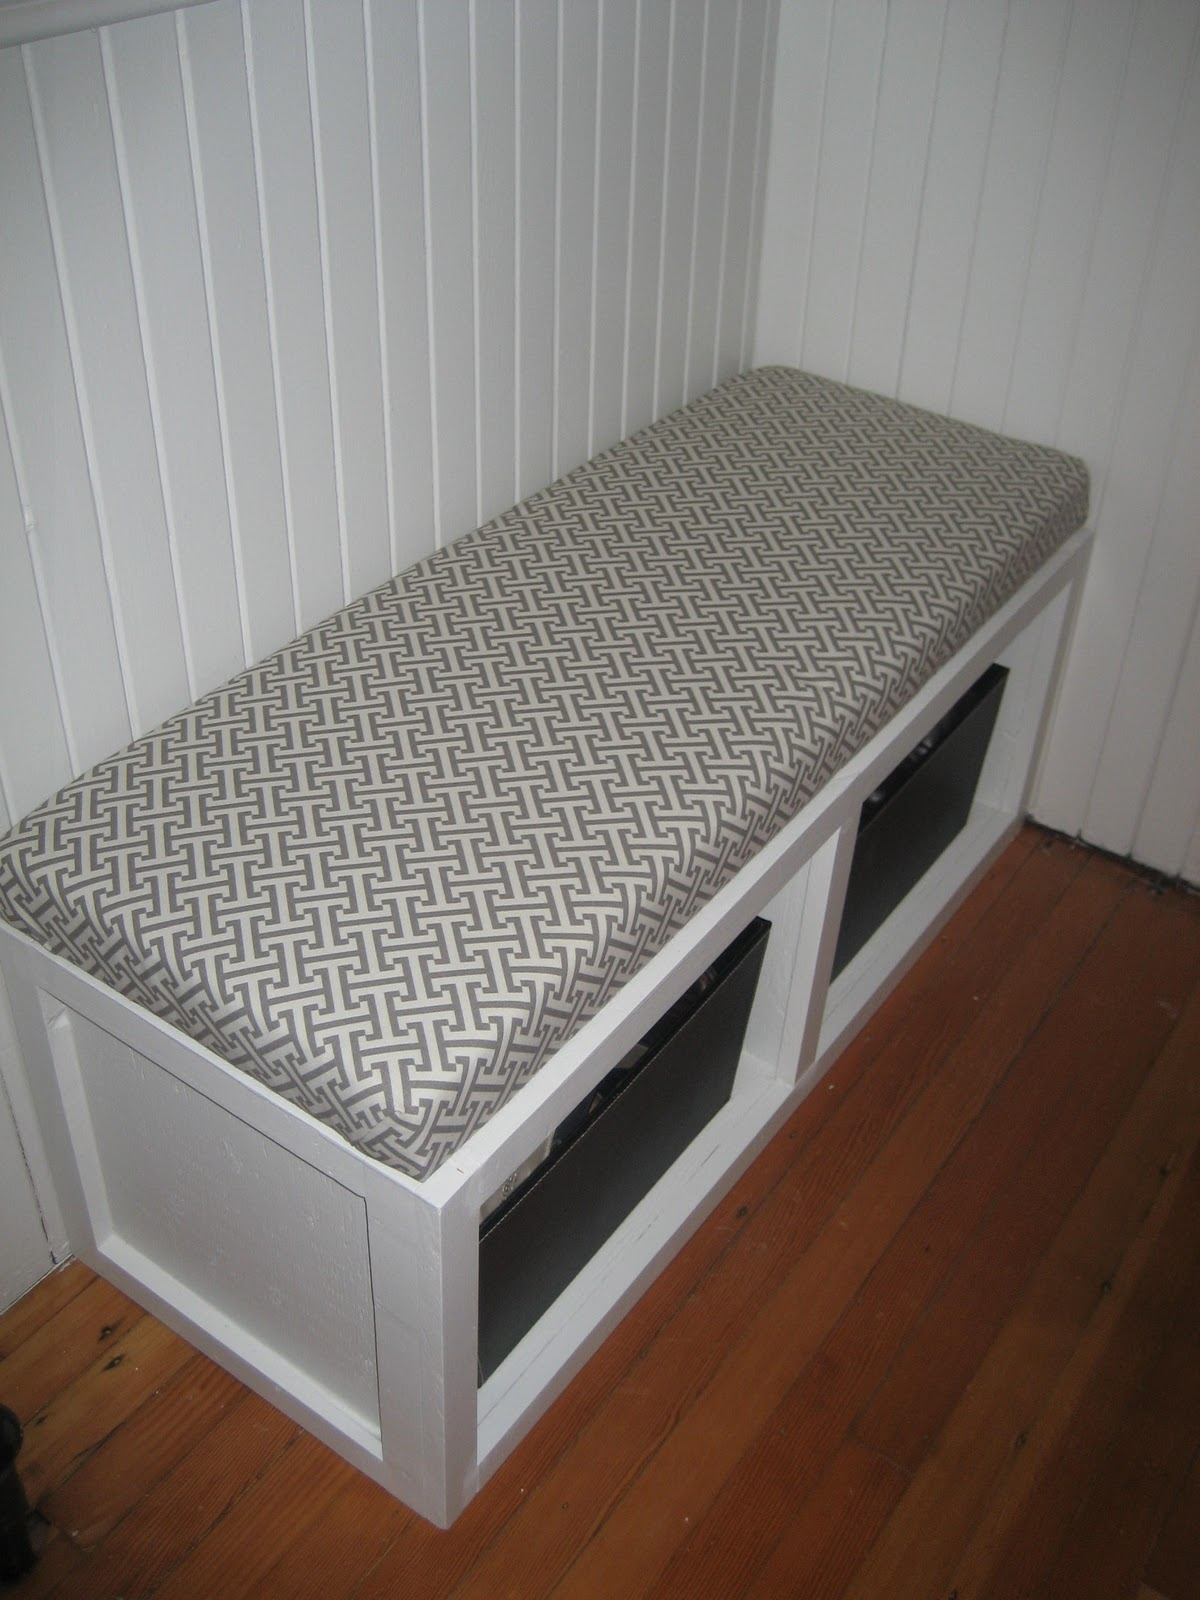 Diy Indoor Bench Seat Cushion Piano Bench Cushion For Inspiring Simple Stools Ideas